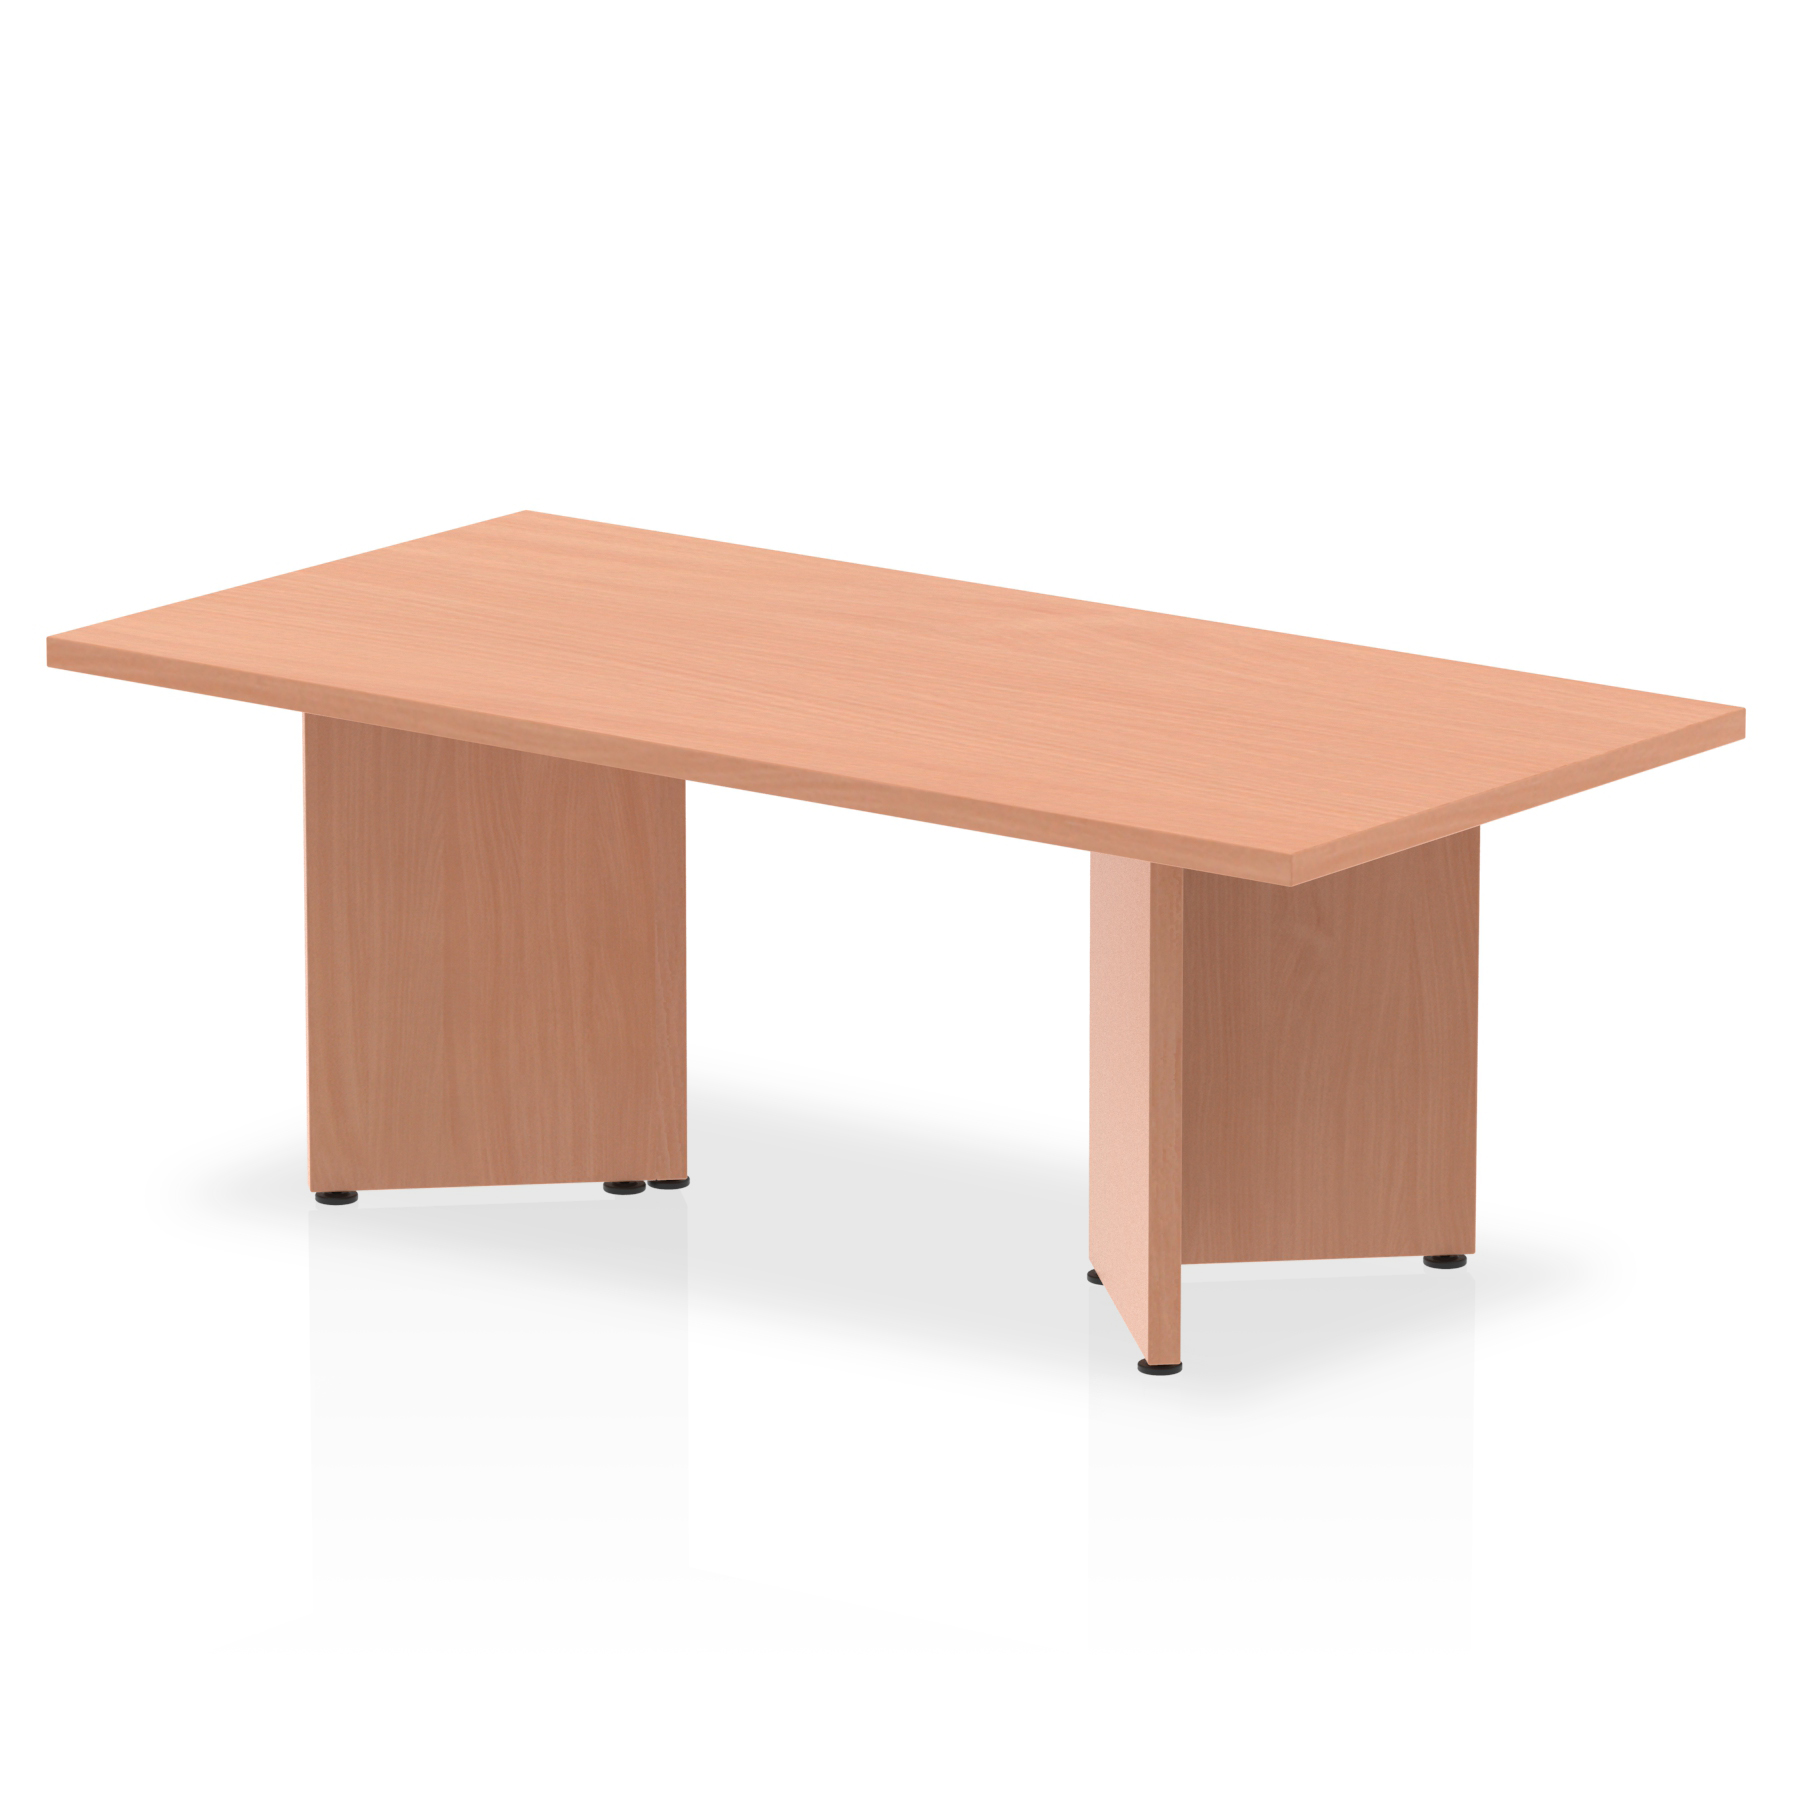 Impulse Coffee Table 1200